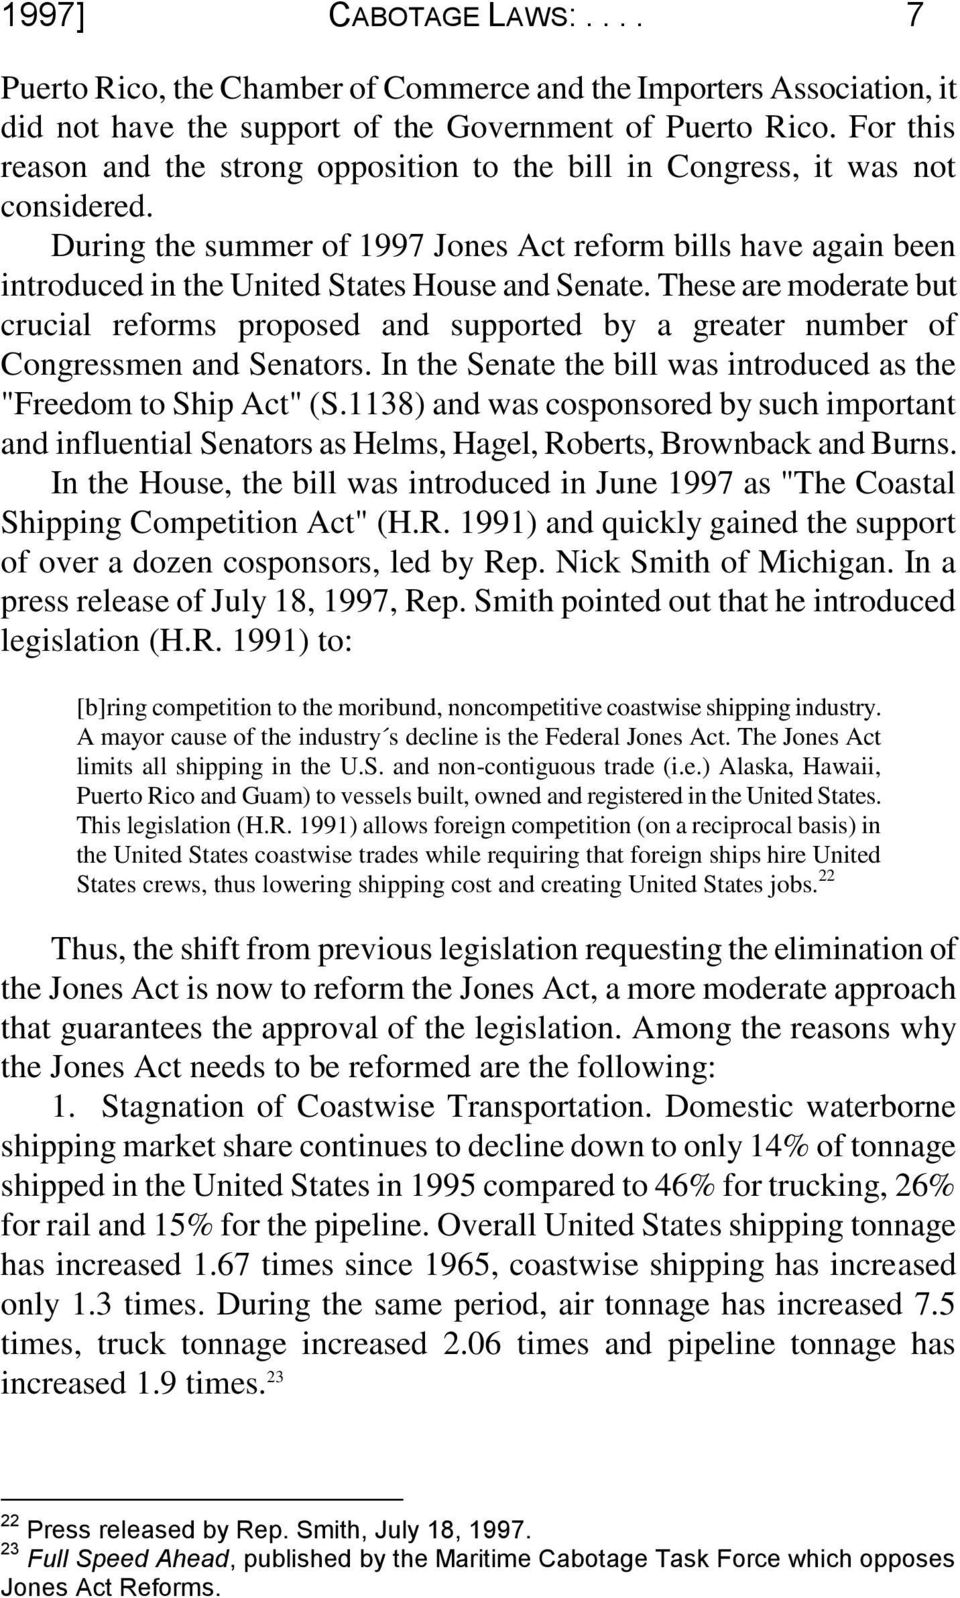 During the summer of 1997 Jones Act reform bills have again been introduced in the United States House and Senate.